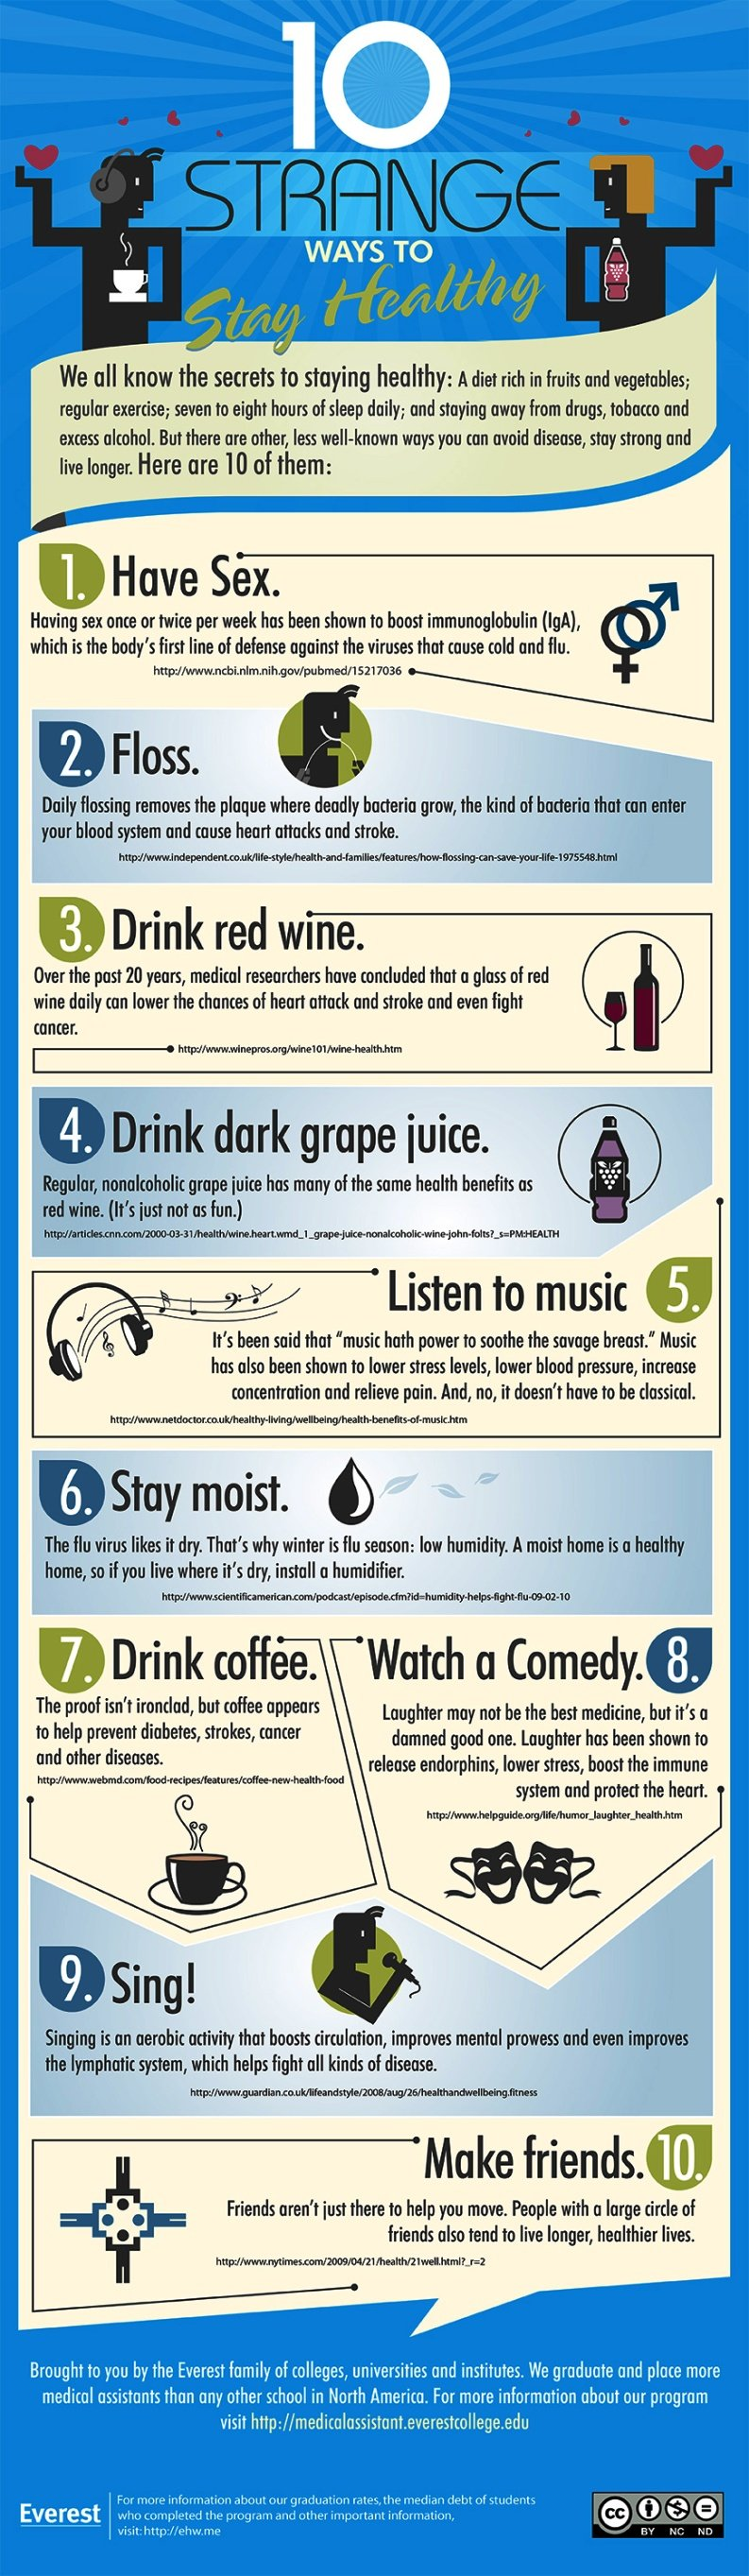 10 strange ways to stay healthy #infographic